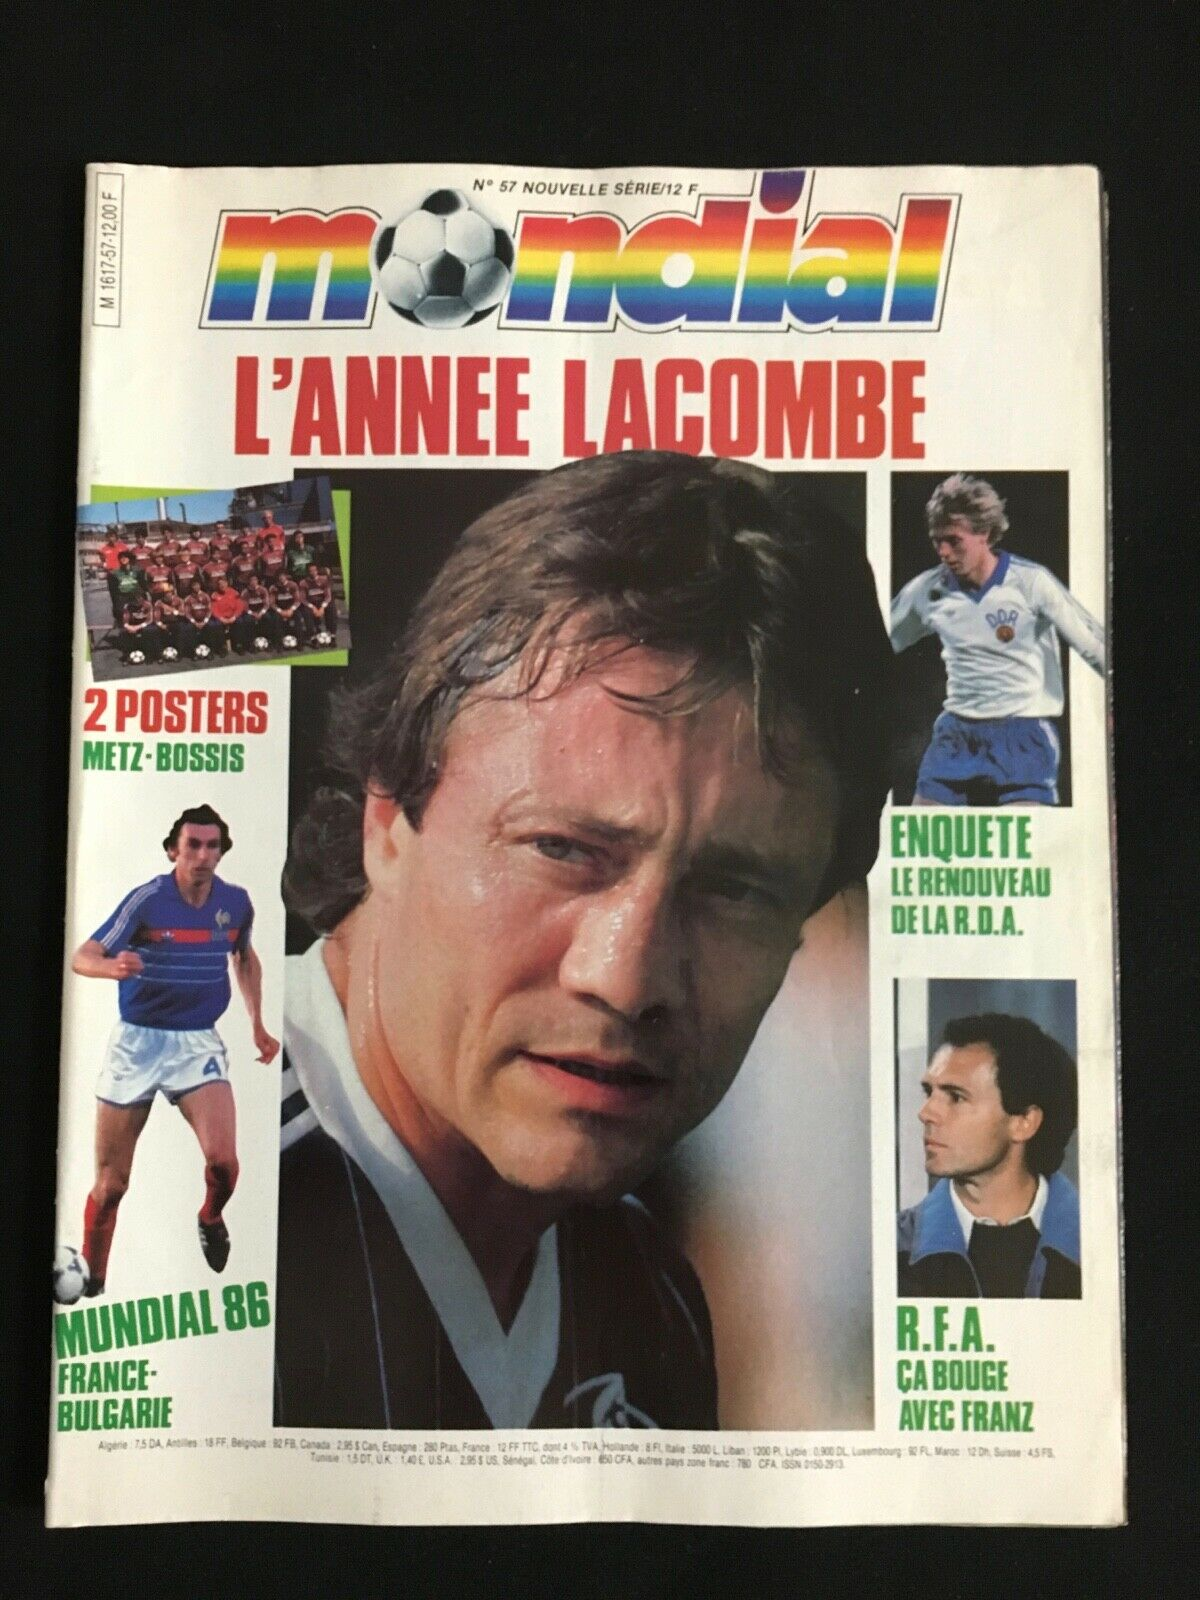 MAGAZINE MONDIAL Nº57 MEXICO 86 ANGLETERRE - FRANCE - BULGARIE- ALLEMAGNE - METZ